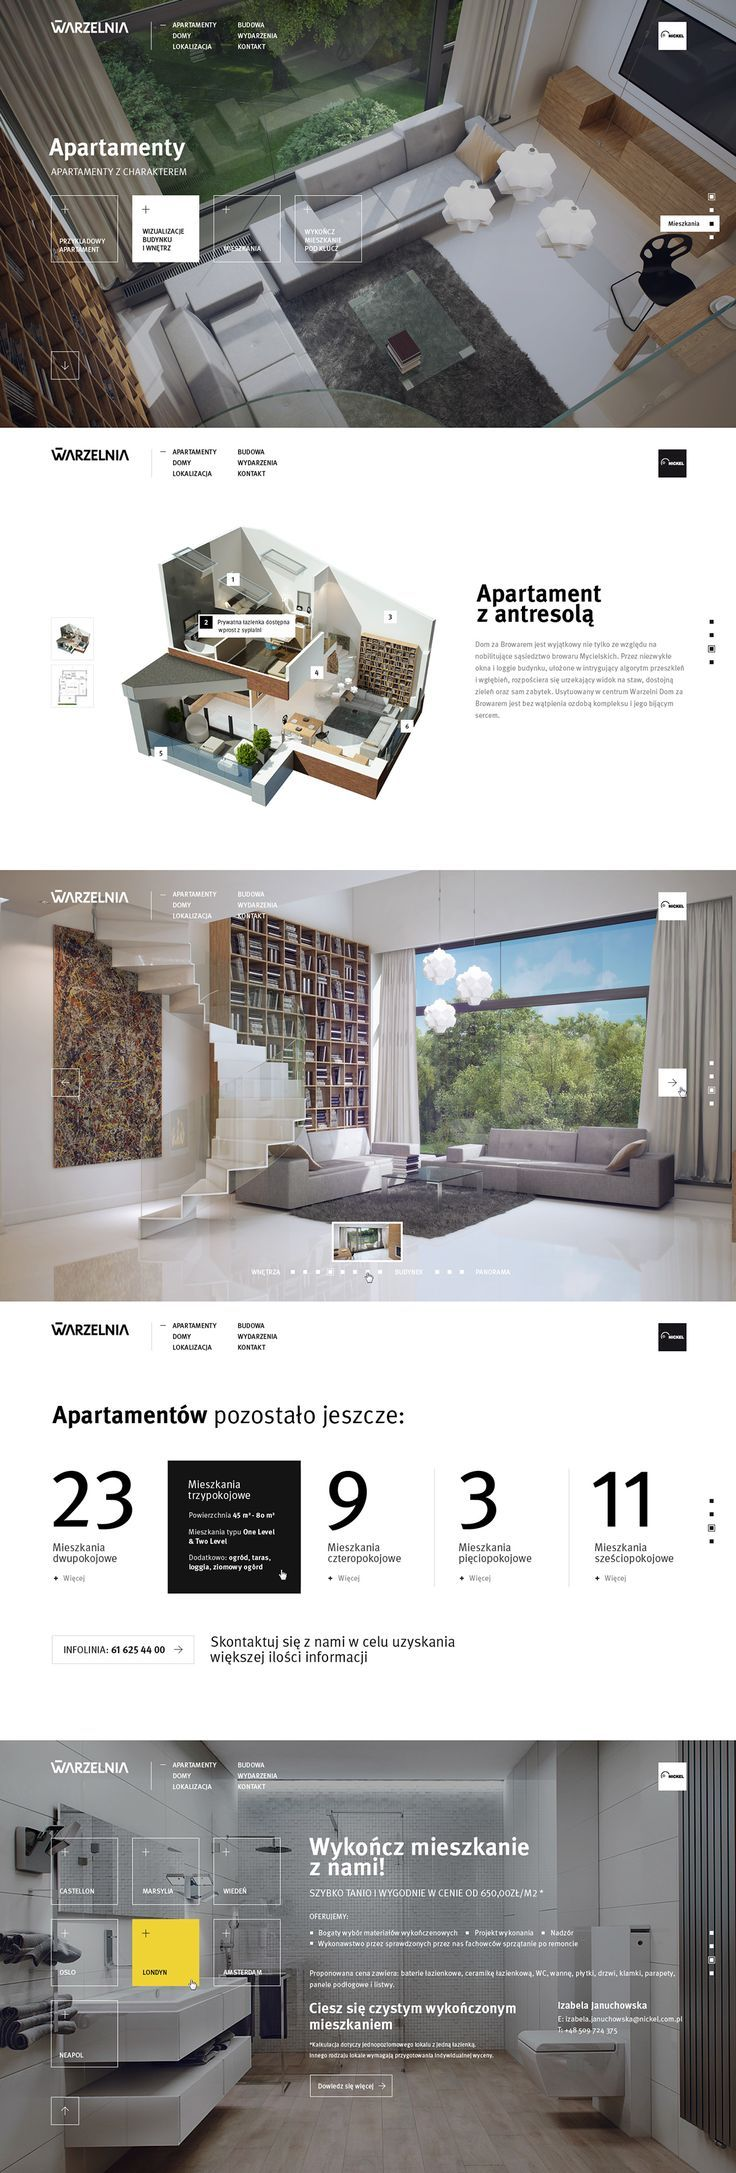 Luxurious apartments in the most desirable location in Poznan. Apartments for sale, surrounded by ponds and trees. My second  version of this amazing investment.Drawings:https://www.behance.net/gallery/7263337/Warzelnia?utm_content=buffer23f71&utm_medium=social&utm_source=pinterest.com&utm_campaign=buffer